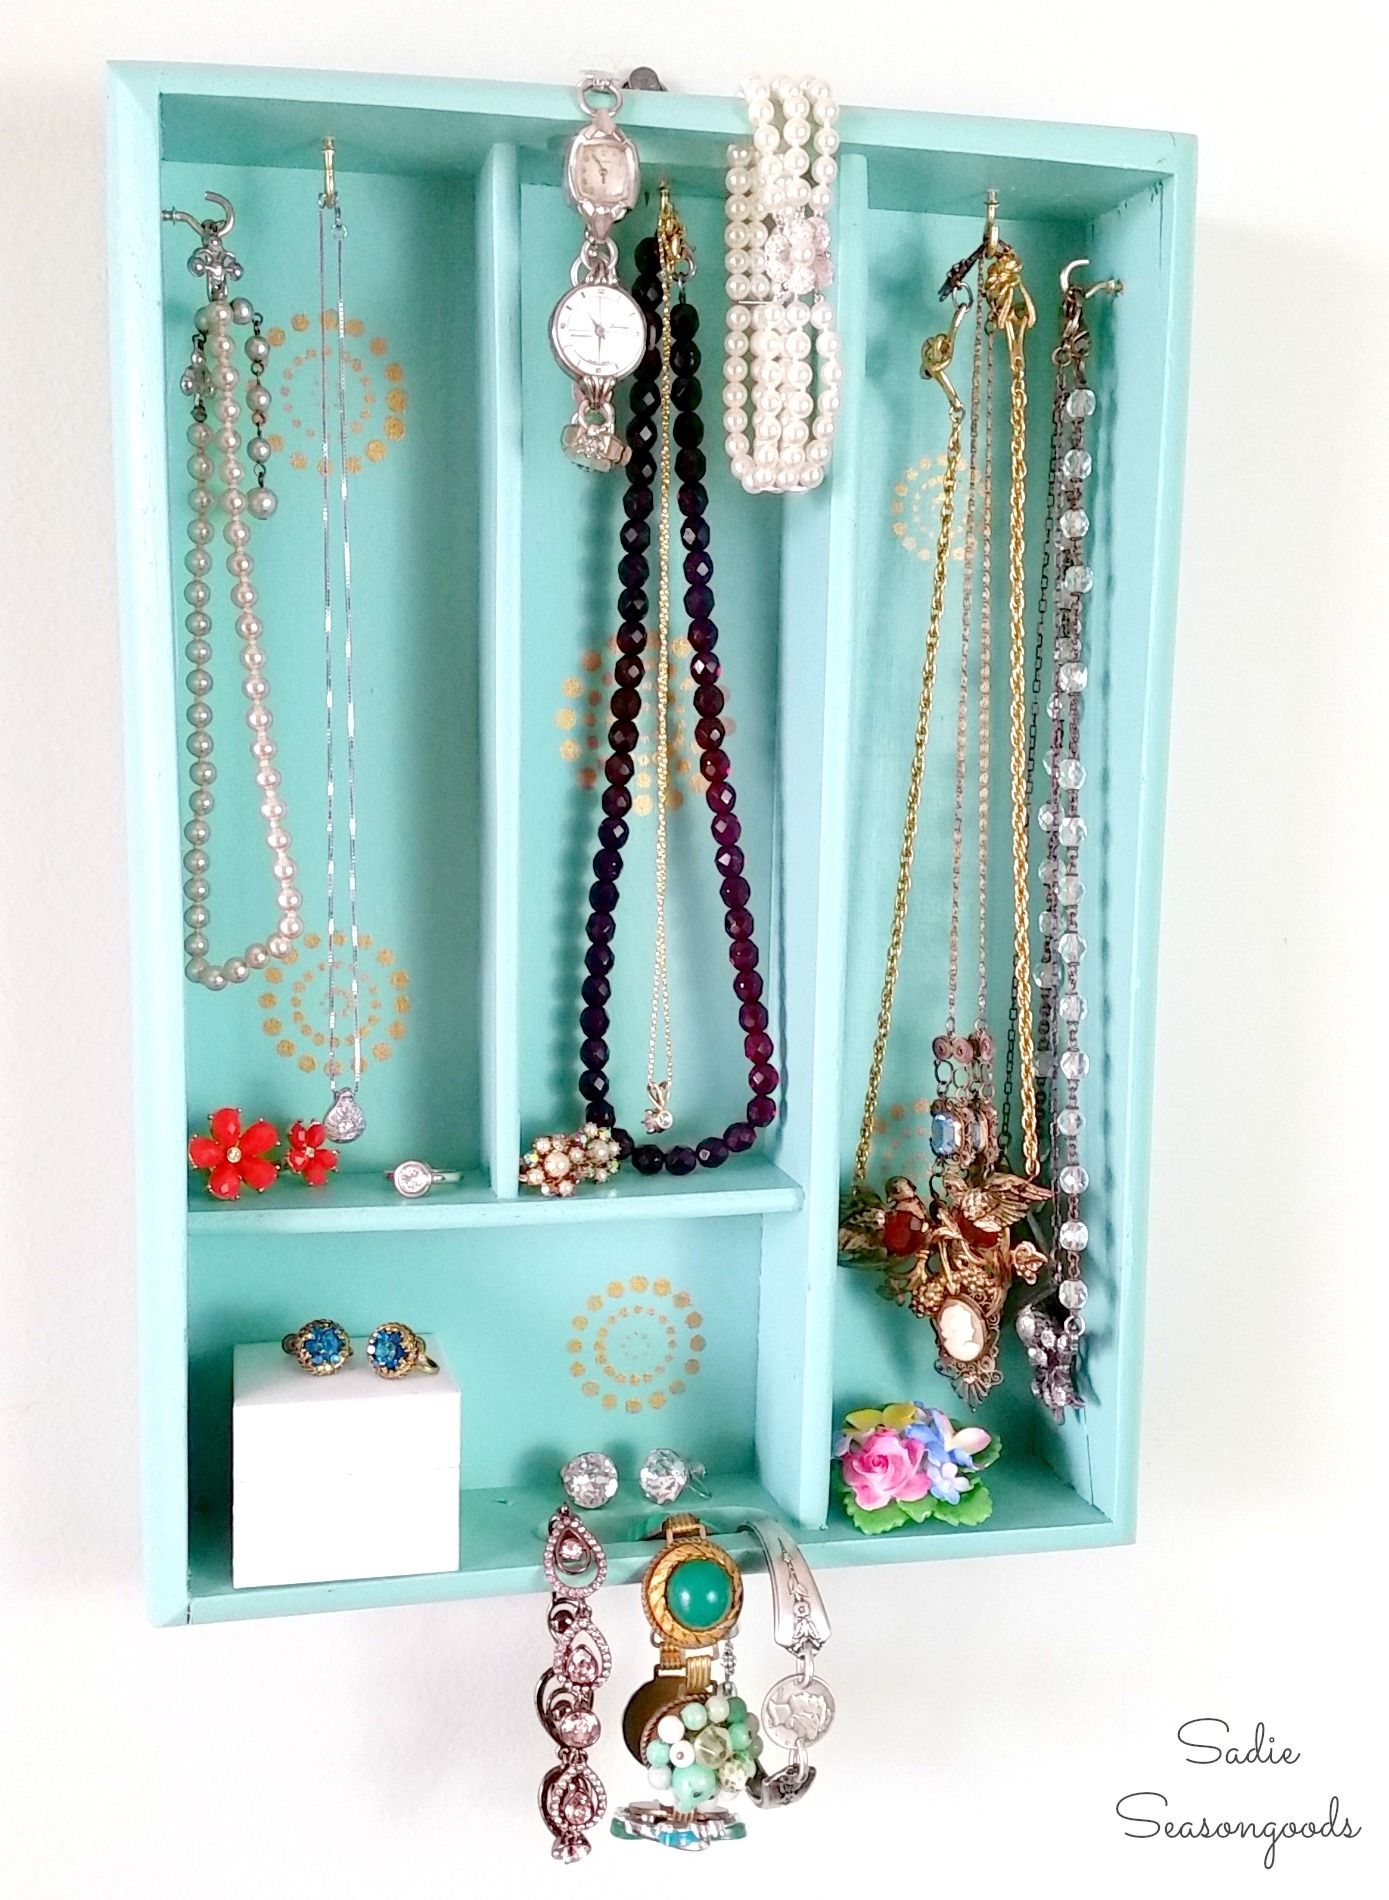 Storing your jewelry is fun and inexpensive when an old wooden